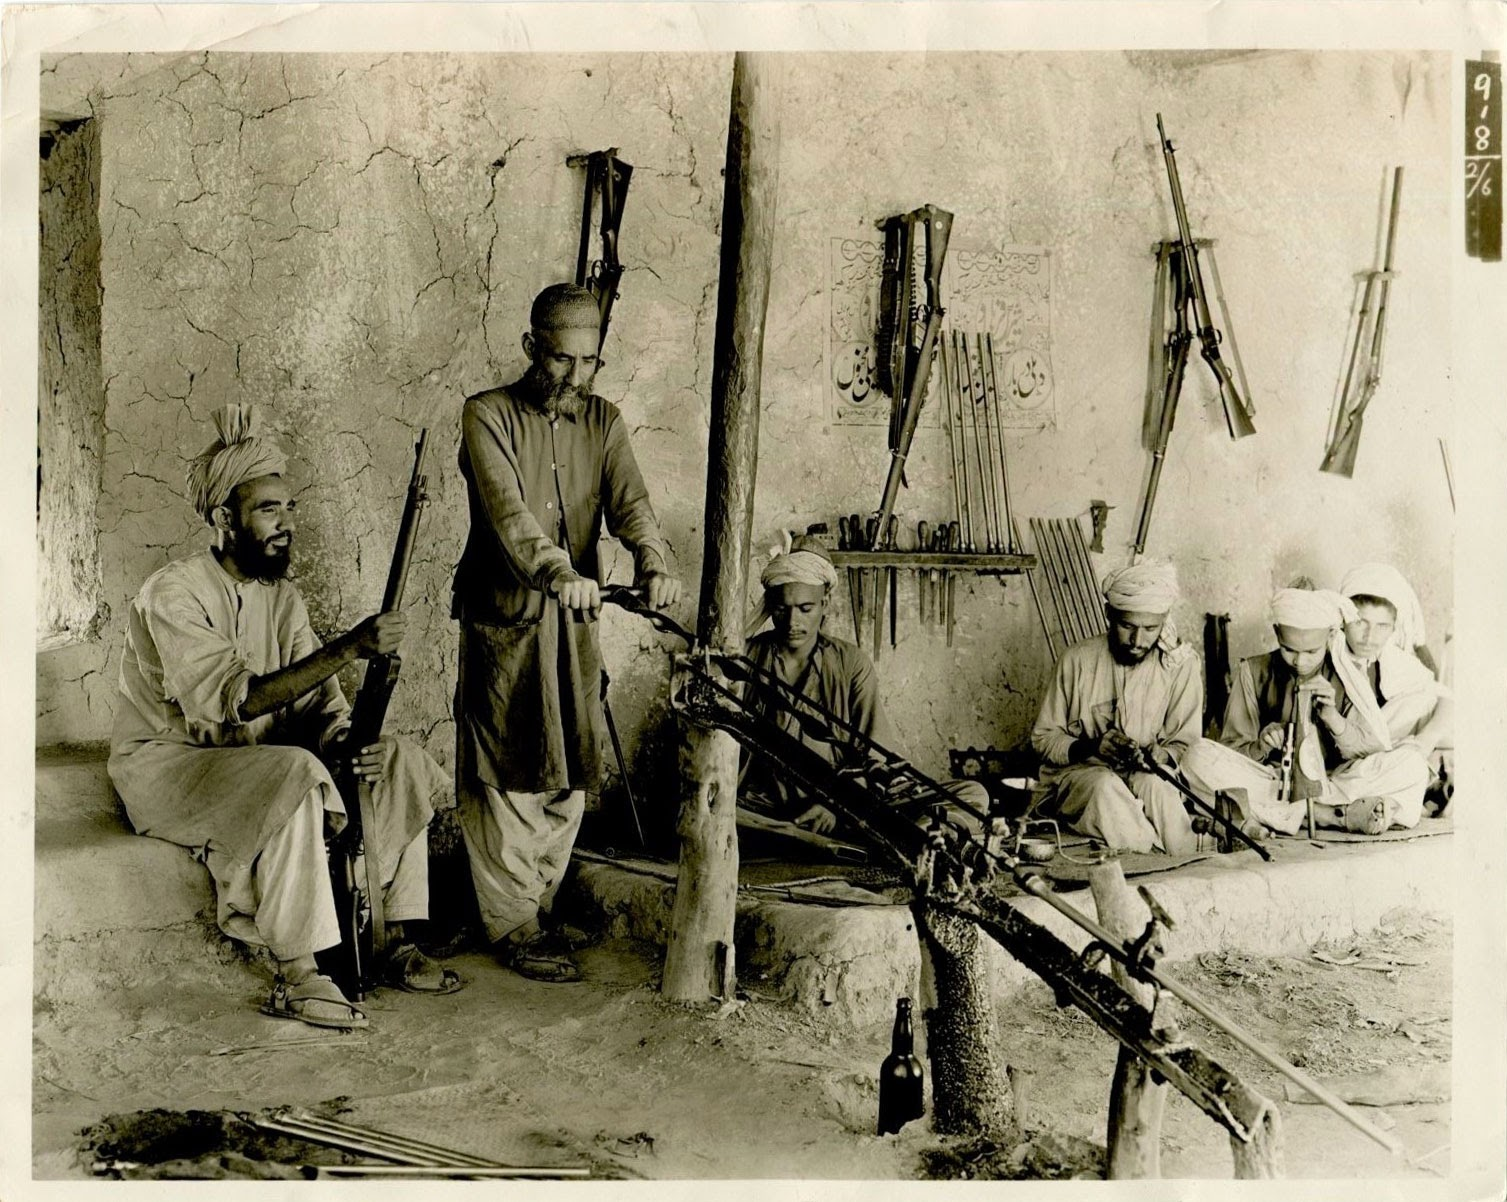 Native Rifle Factory Kohat Pass India 1935